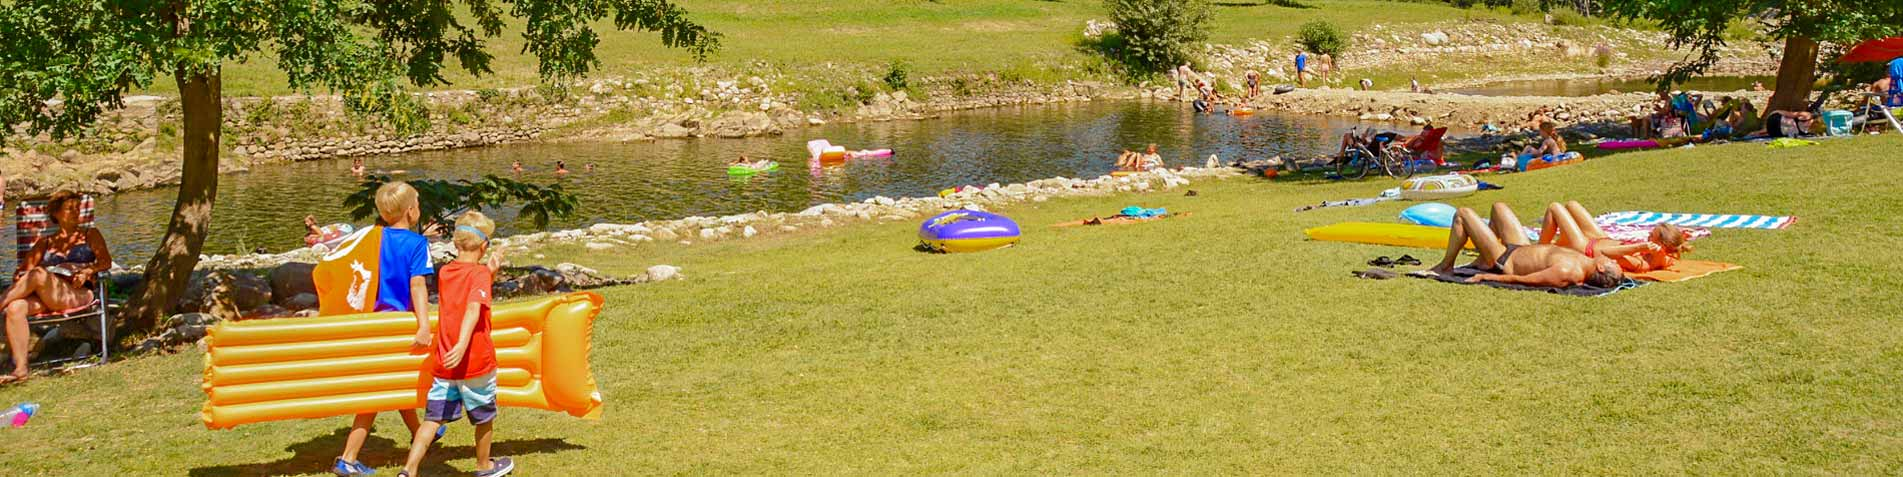 contact camping cevennes